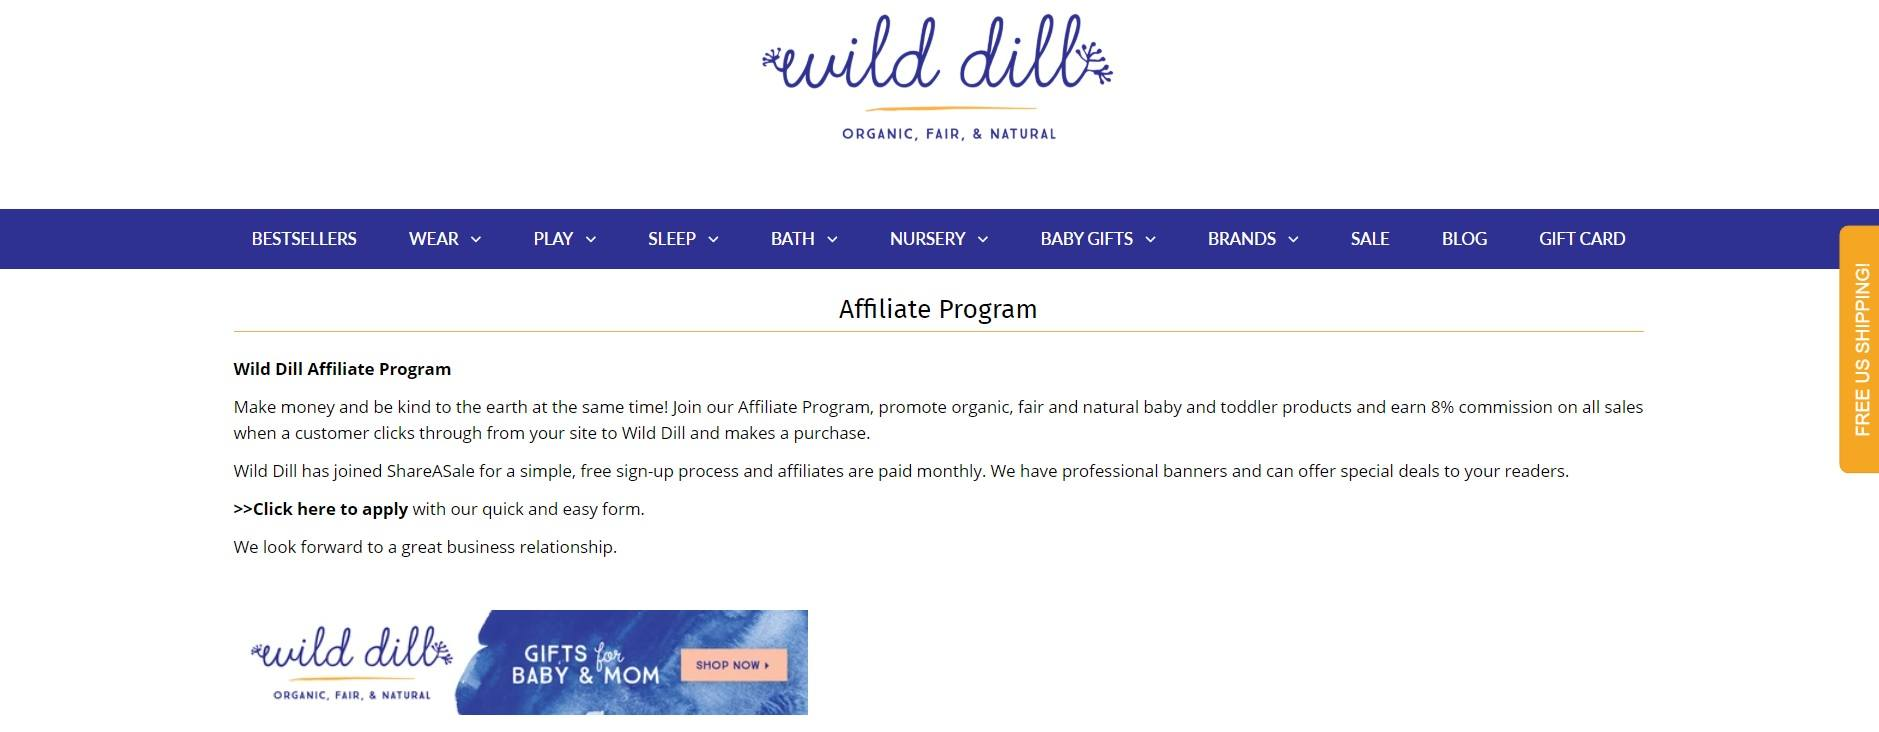 WildDill Affiliate Program